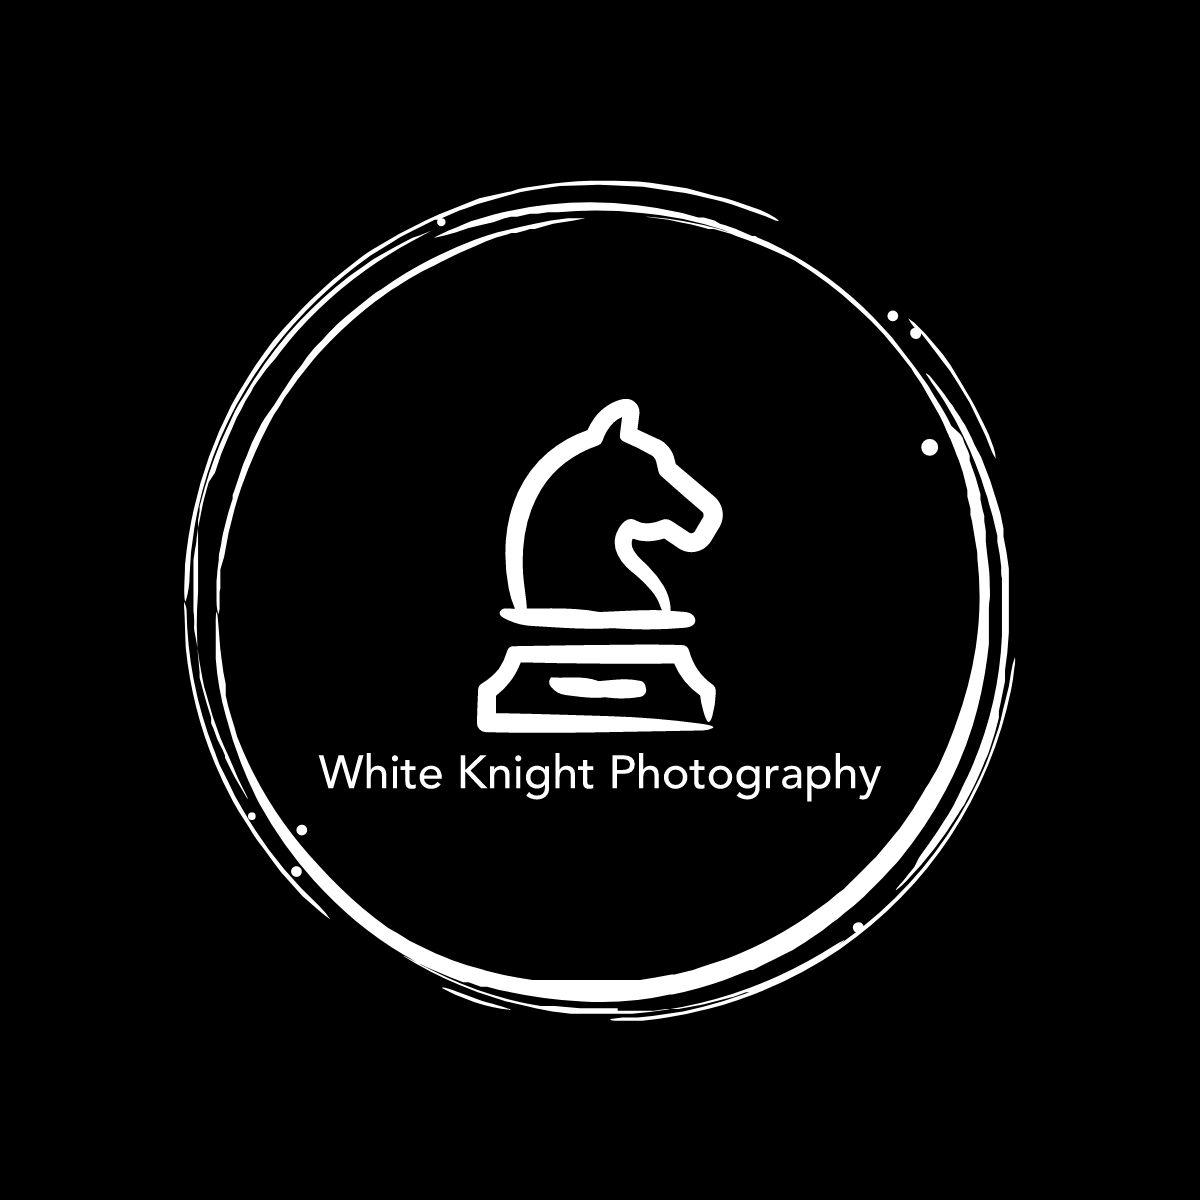 White Knight Photography